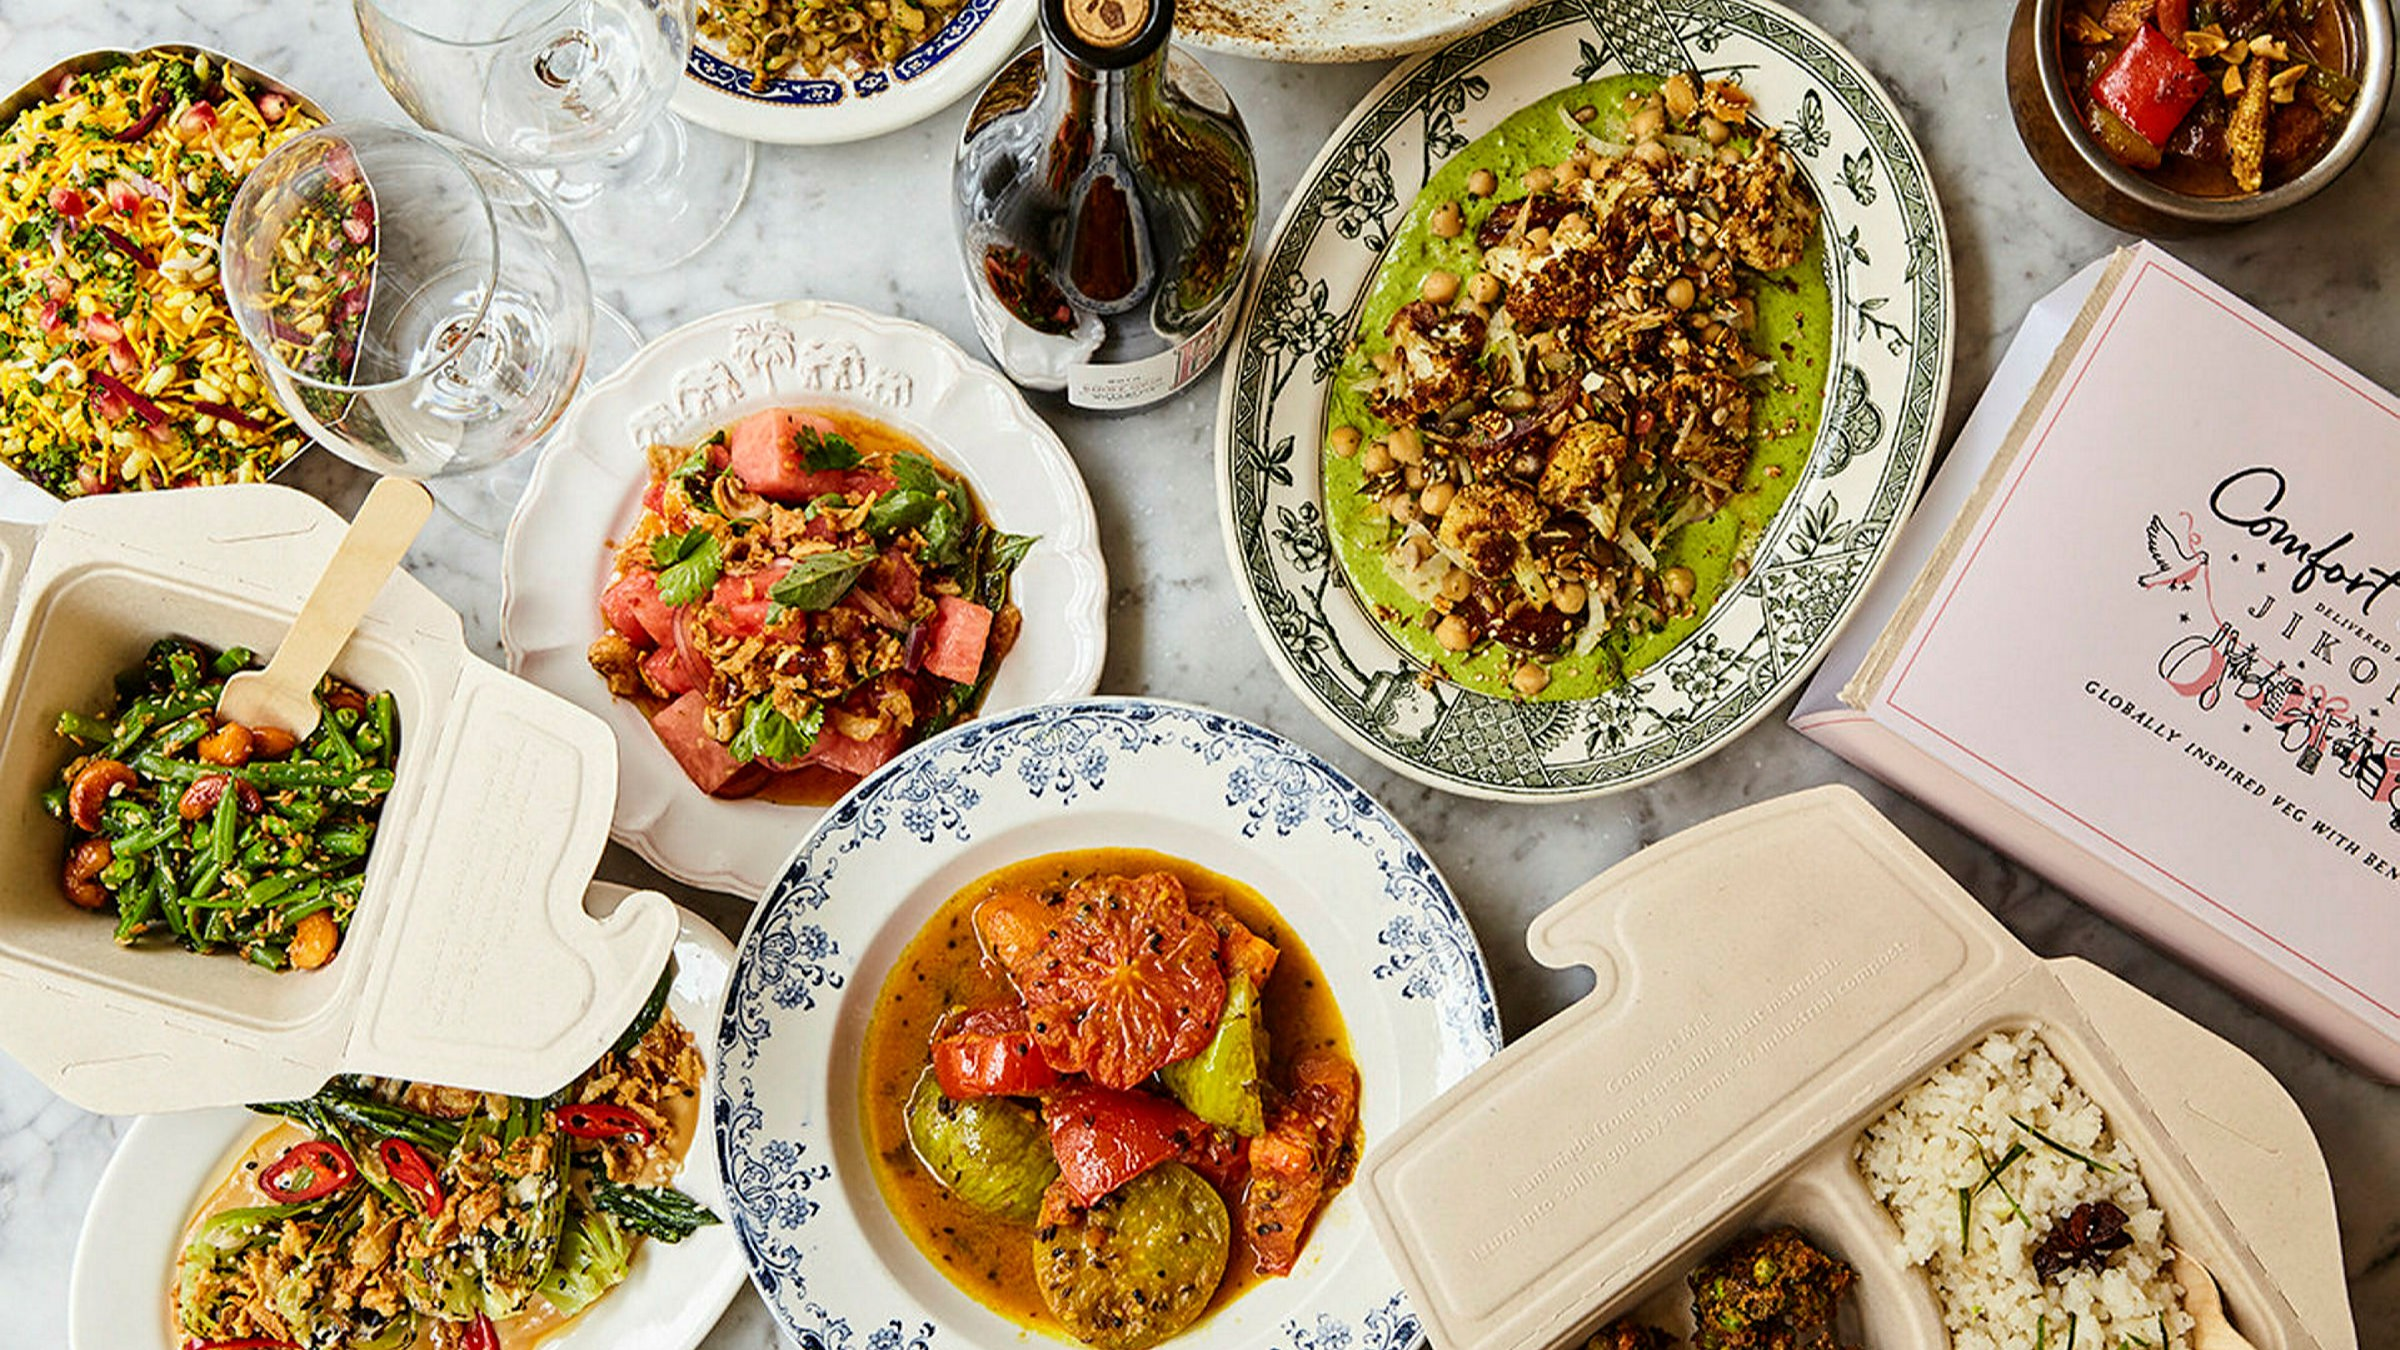 Recipes For Success London Restaurants Best Meal Kits For Lockdown And Beyond Financial Times